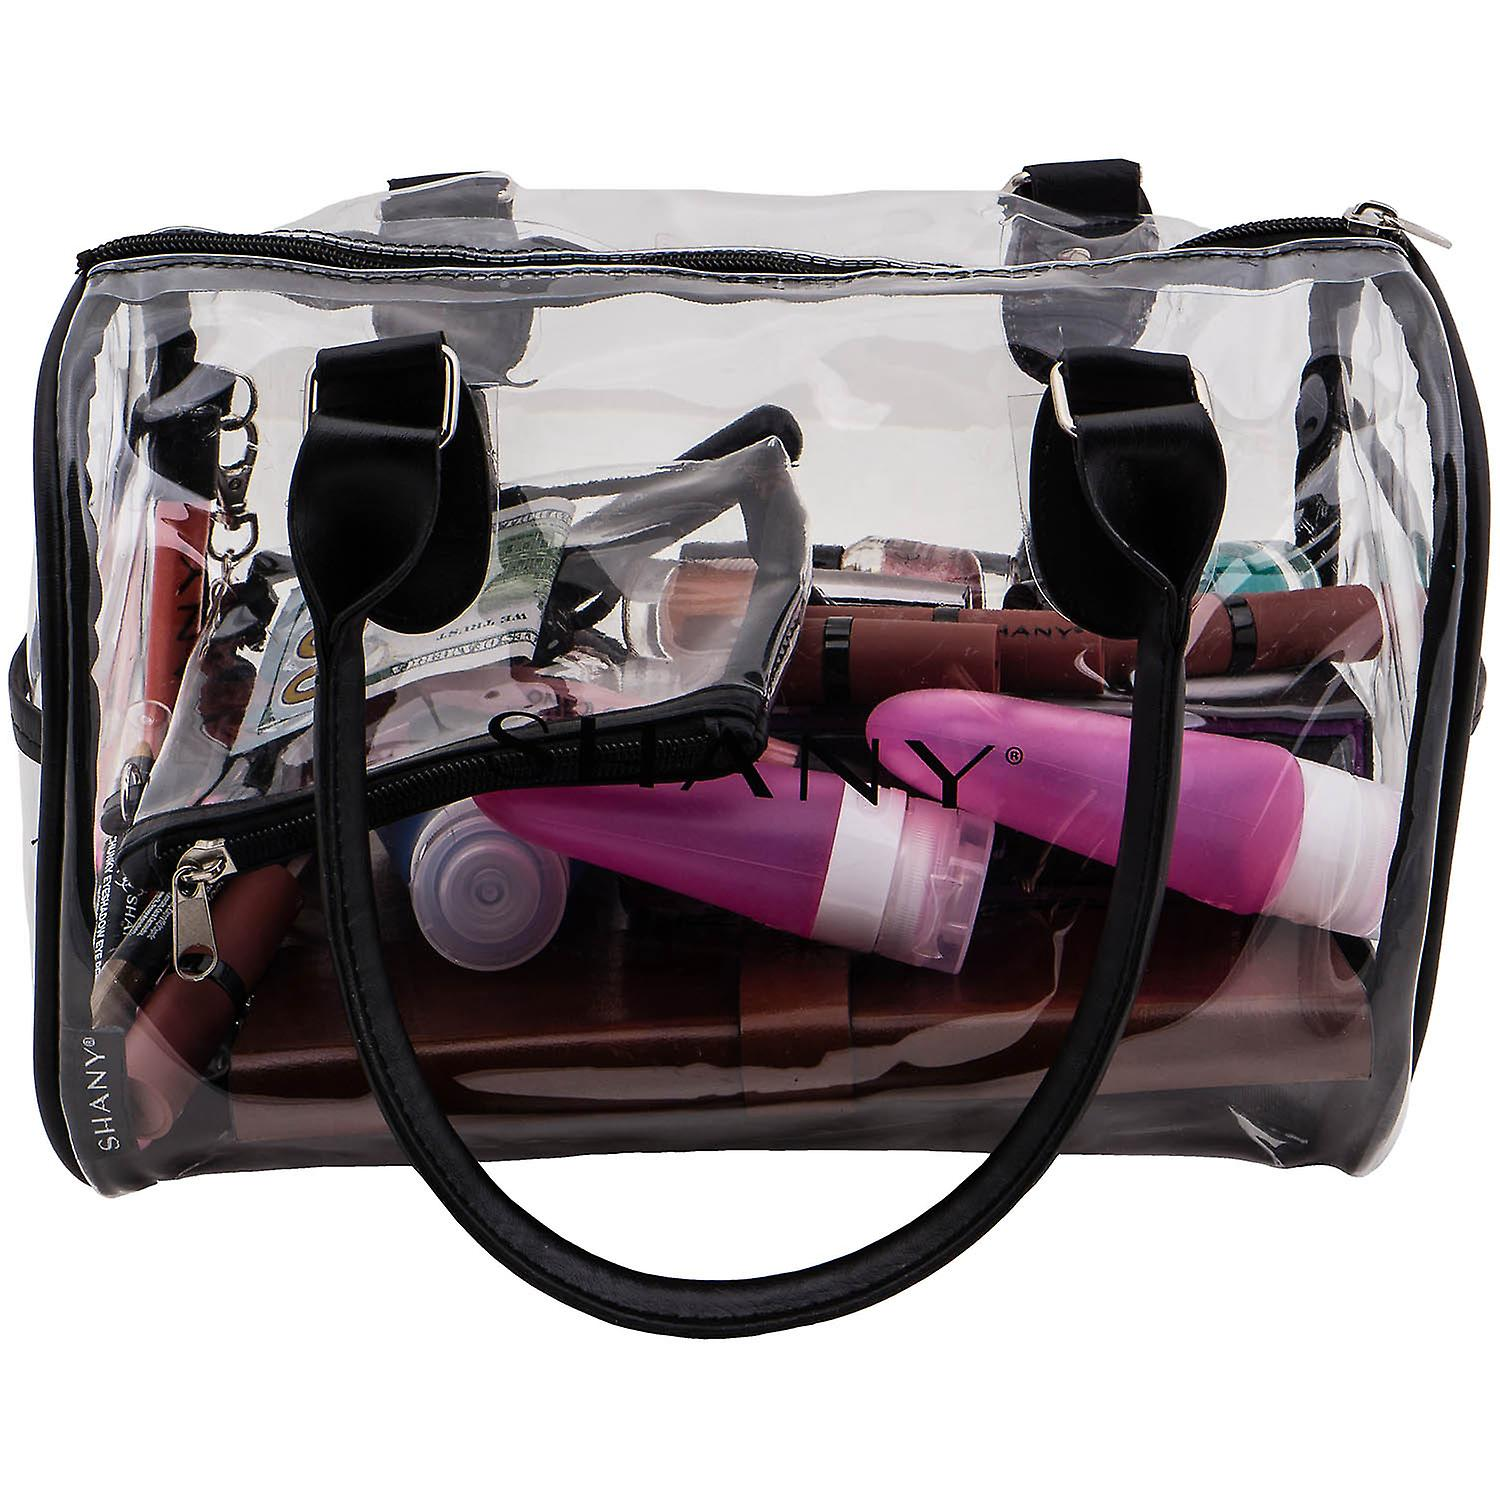 SHANY Clear Waterproof Carryall Handbag -  See-Thru PVC Tote Bag with Faux Leather Handles, Open Side Pockets and Detachable Cosmetic Bag